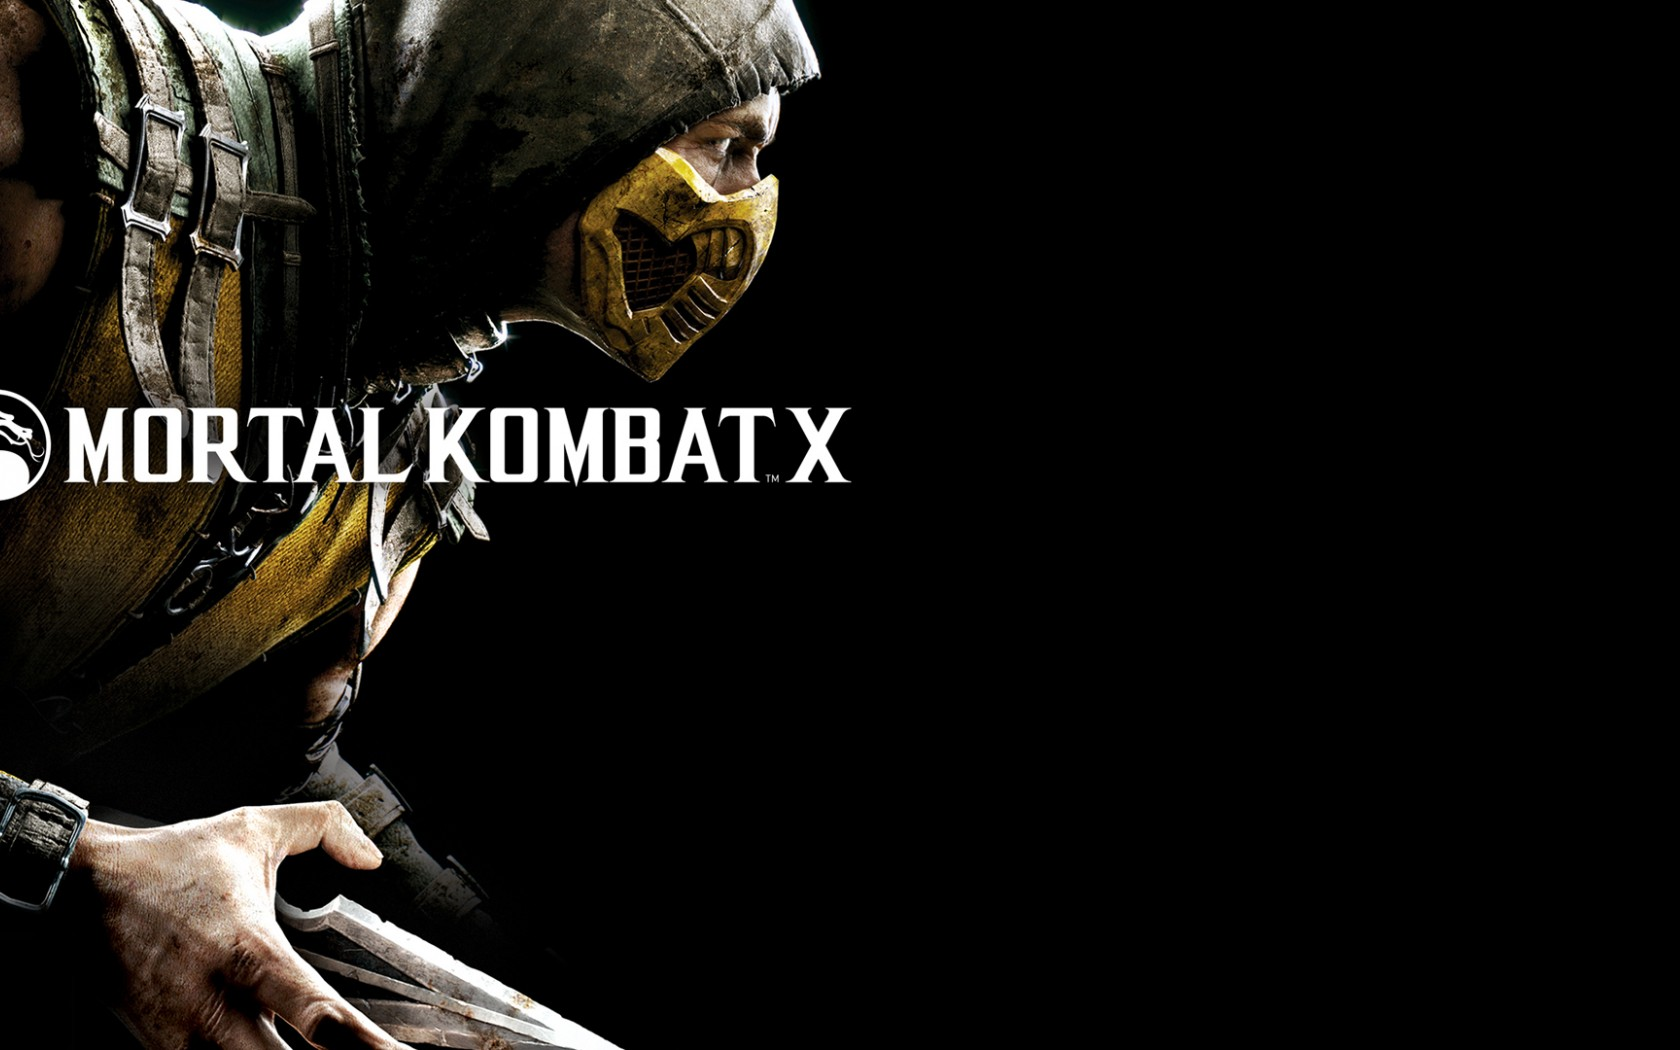 Mortal Kombat Wallpaper Scorpion 12 Mortal Kombat Games Fan Site